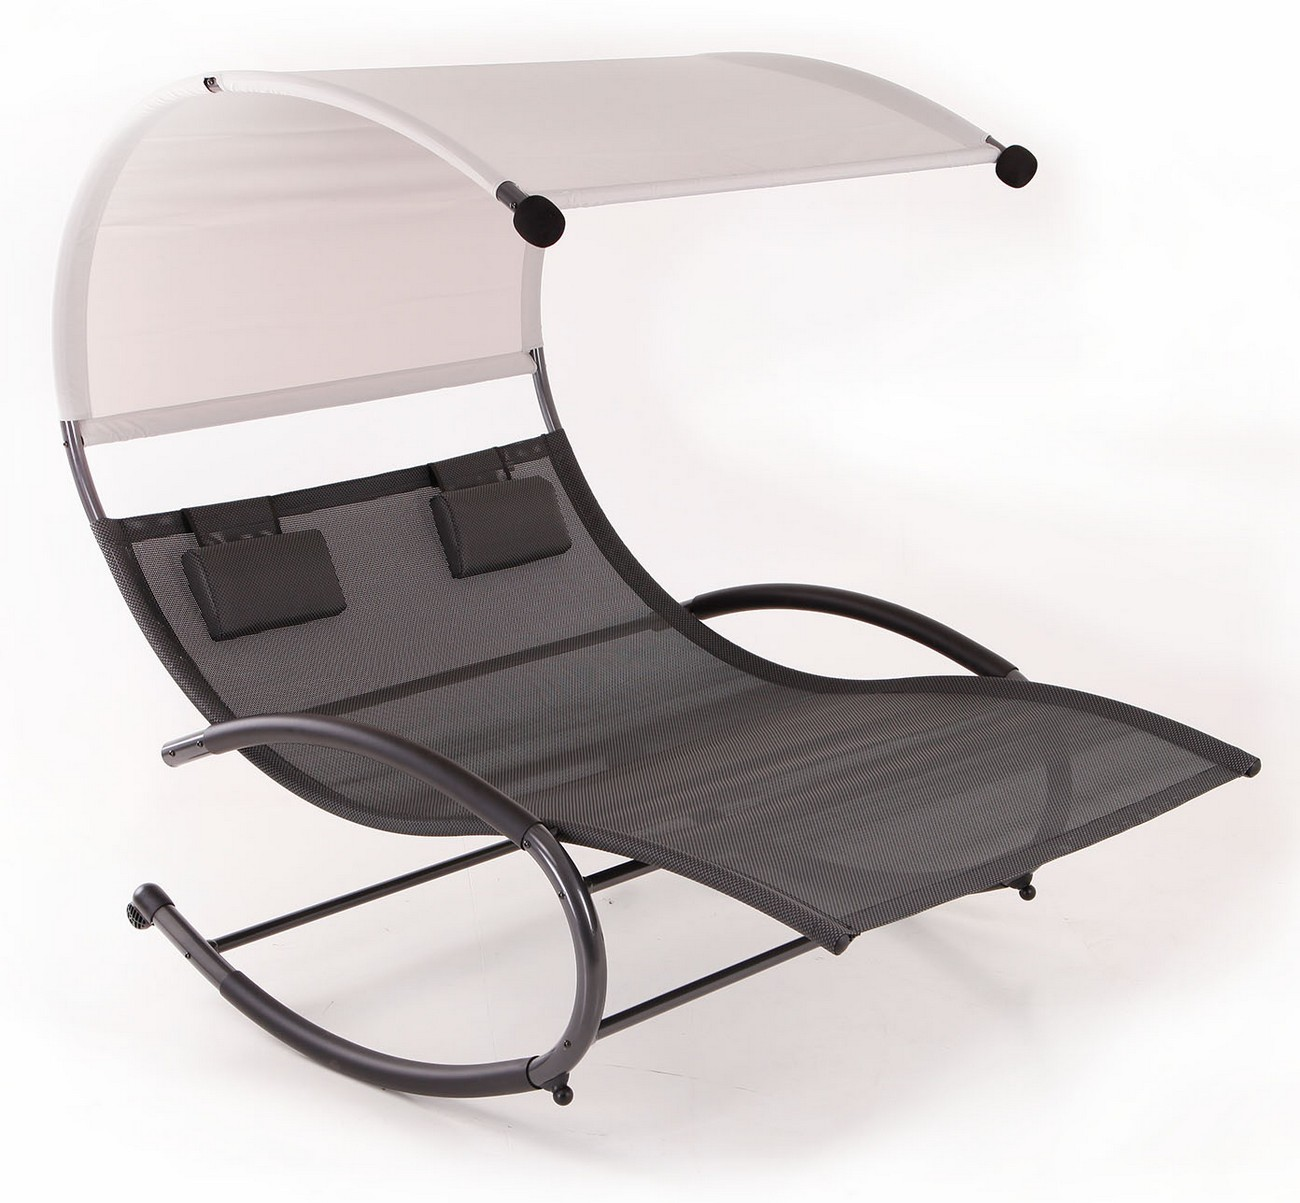 Double Chaise Rocker Patio Furniture Seat Chair Canopy